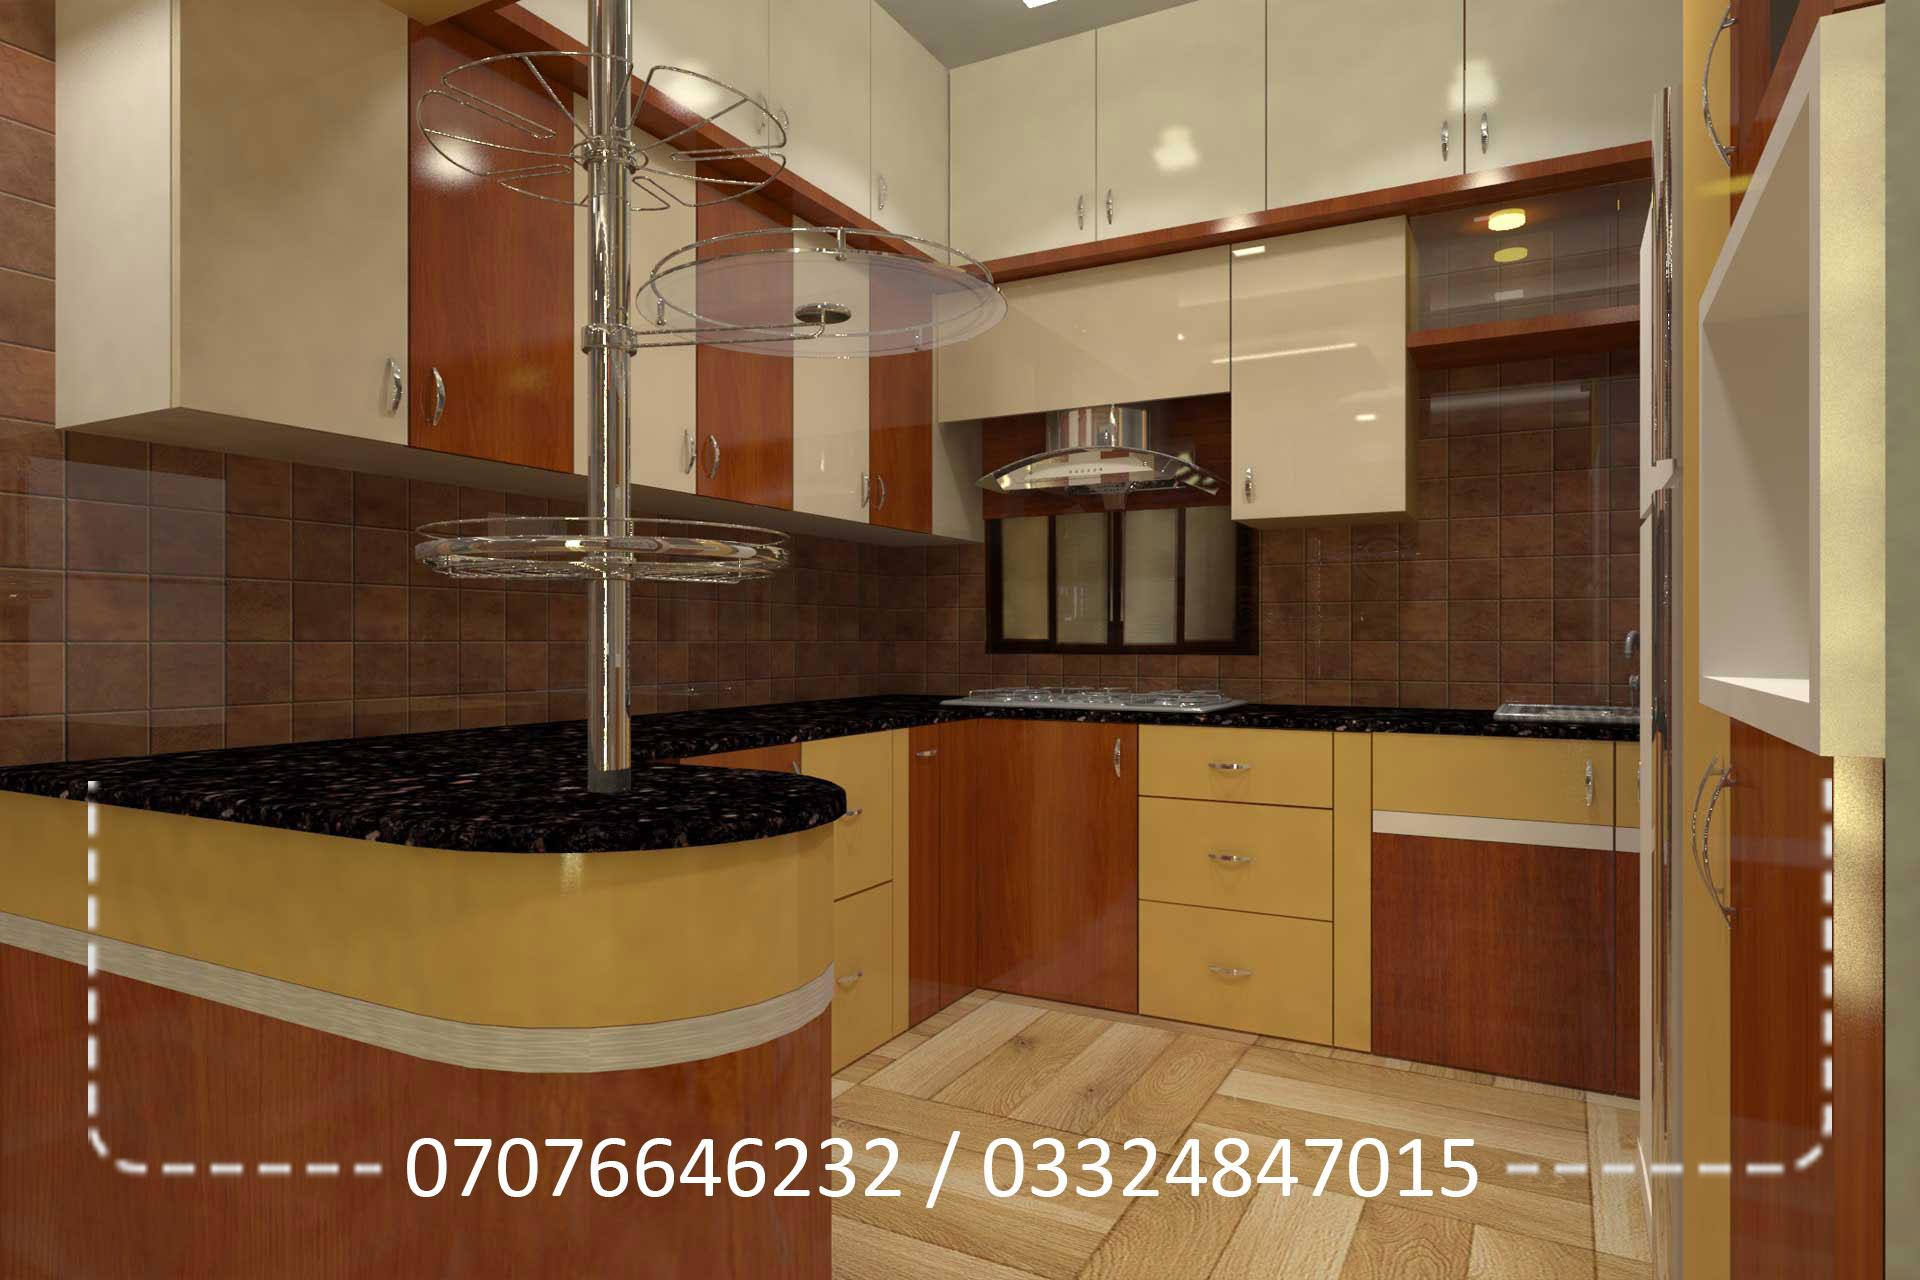 Interior Design Affordable Cost Kolkata Residential Commercial House Office Flat Shop Bedroom Living Room Kitchen Complete Designing Solutions